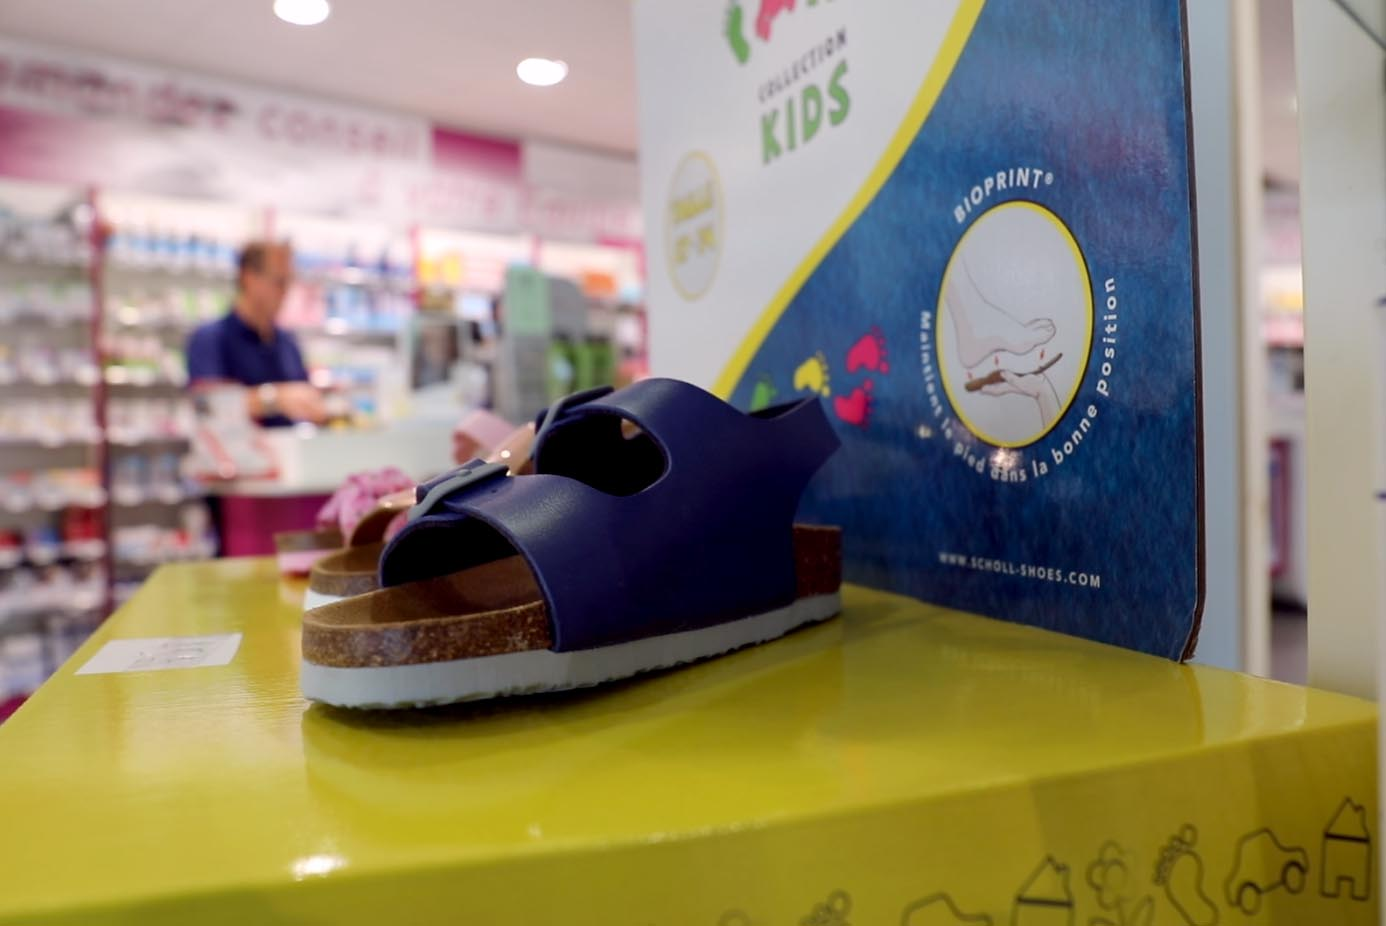 chaussures scholl pharmacie hue beaumont le roger kids